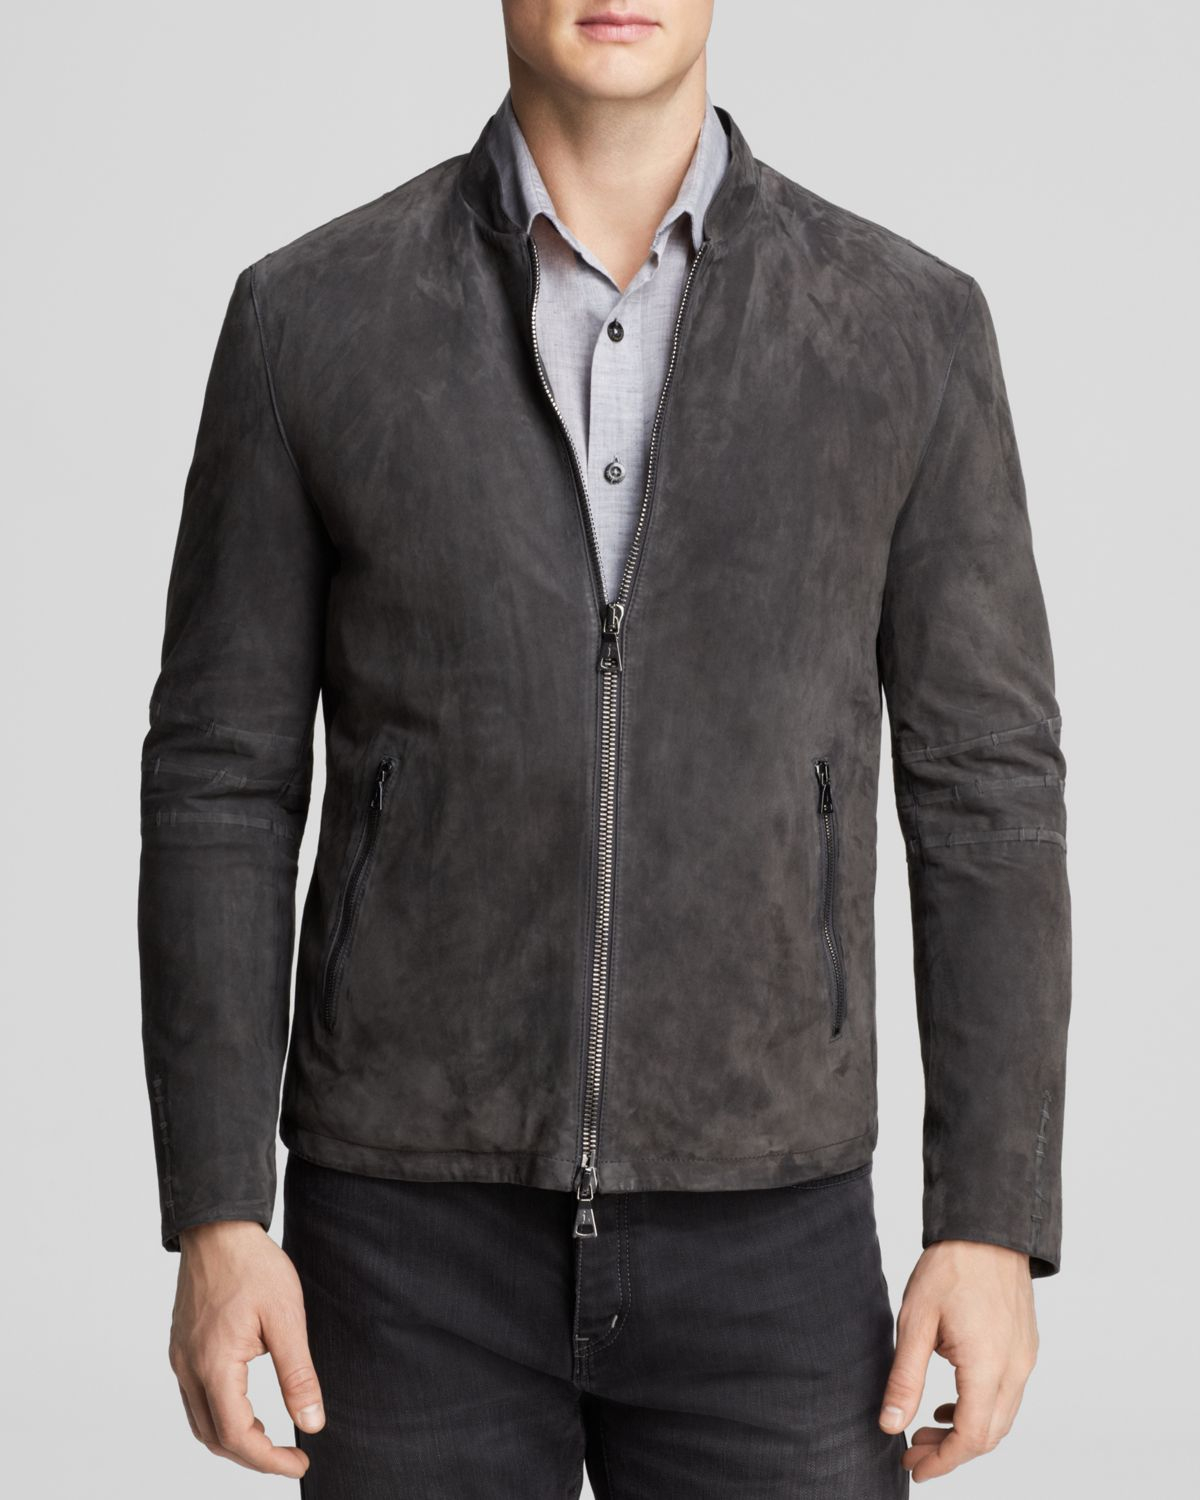 Suede Jacket Outfits For Men 20 Ways To Wear A Suede Jacket: John Varvatos Collection Zip Suede Jacket In Gray